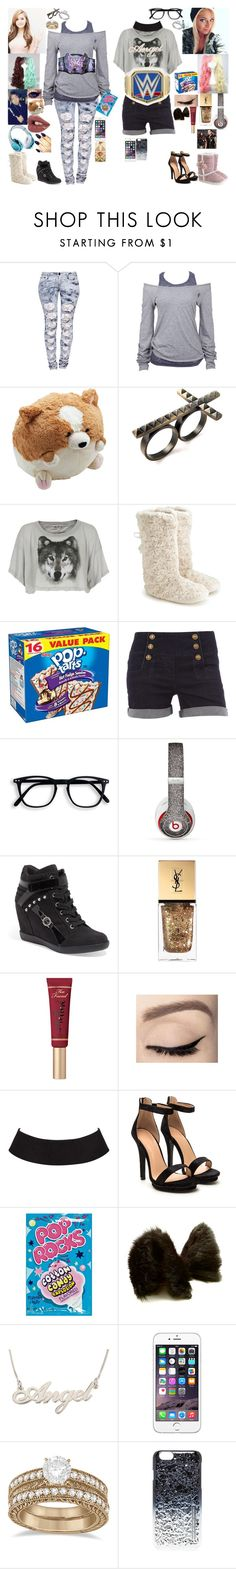 """""""Backstage watching Dean and Baron VS Randy and Brady Wyatt"""" by keeliewatsonoffical on Polyvore featuring Dollhouse, Boohoo, Soul Cal, Alex and Chloe, Wildfox, Monsoon, WWE, Dorothy Perkins, Beats by Dr. Dre and GUESS"""